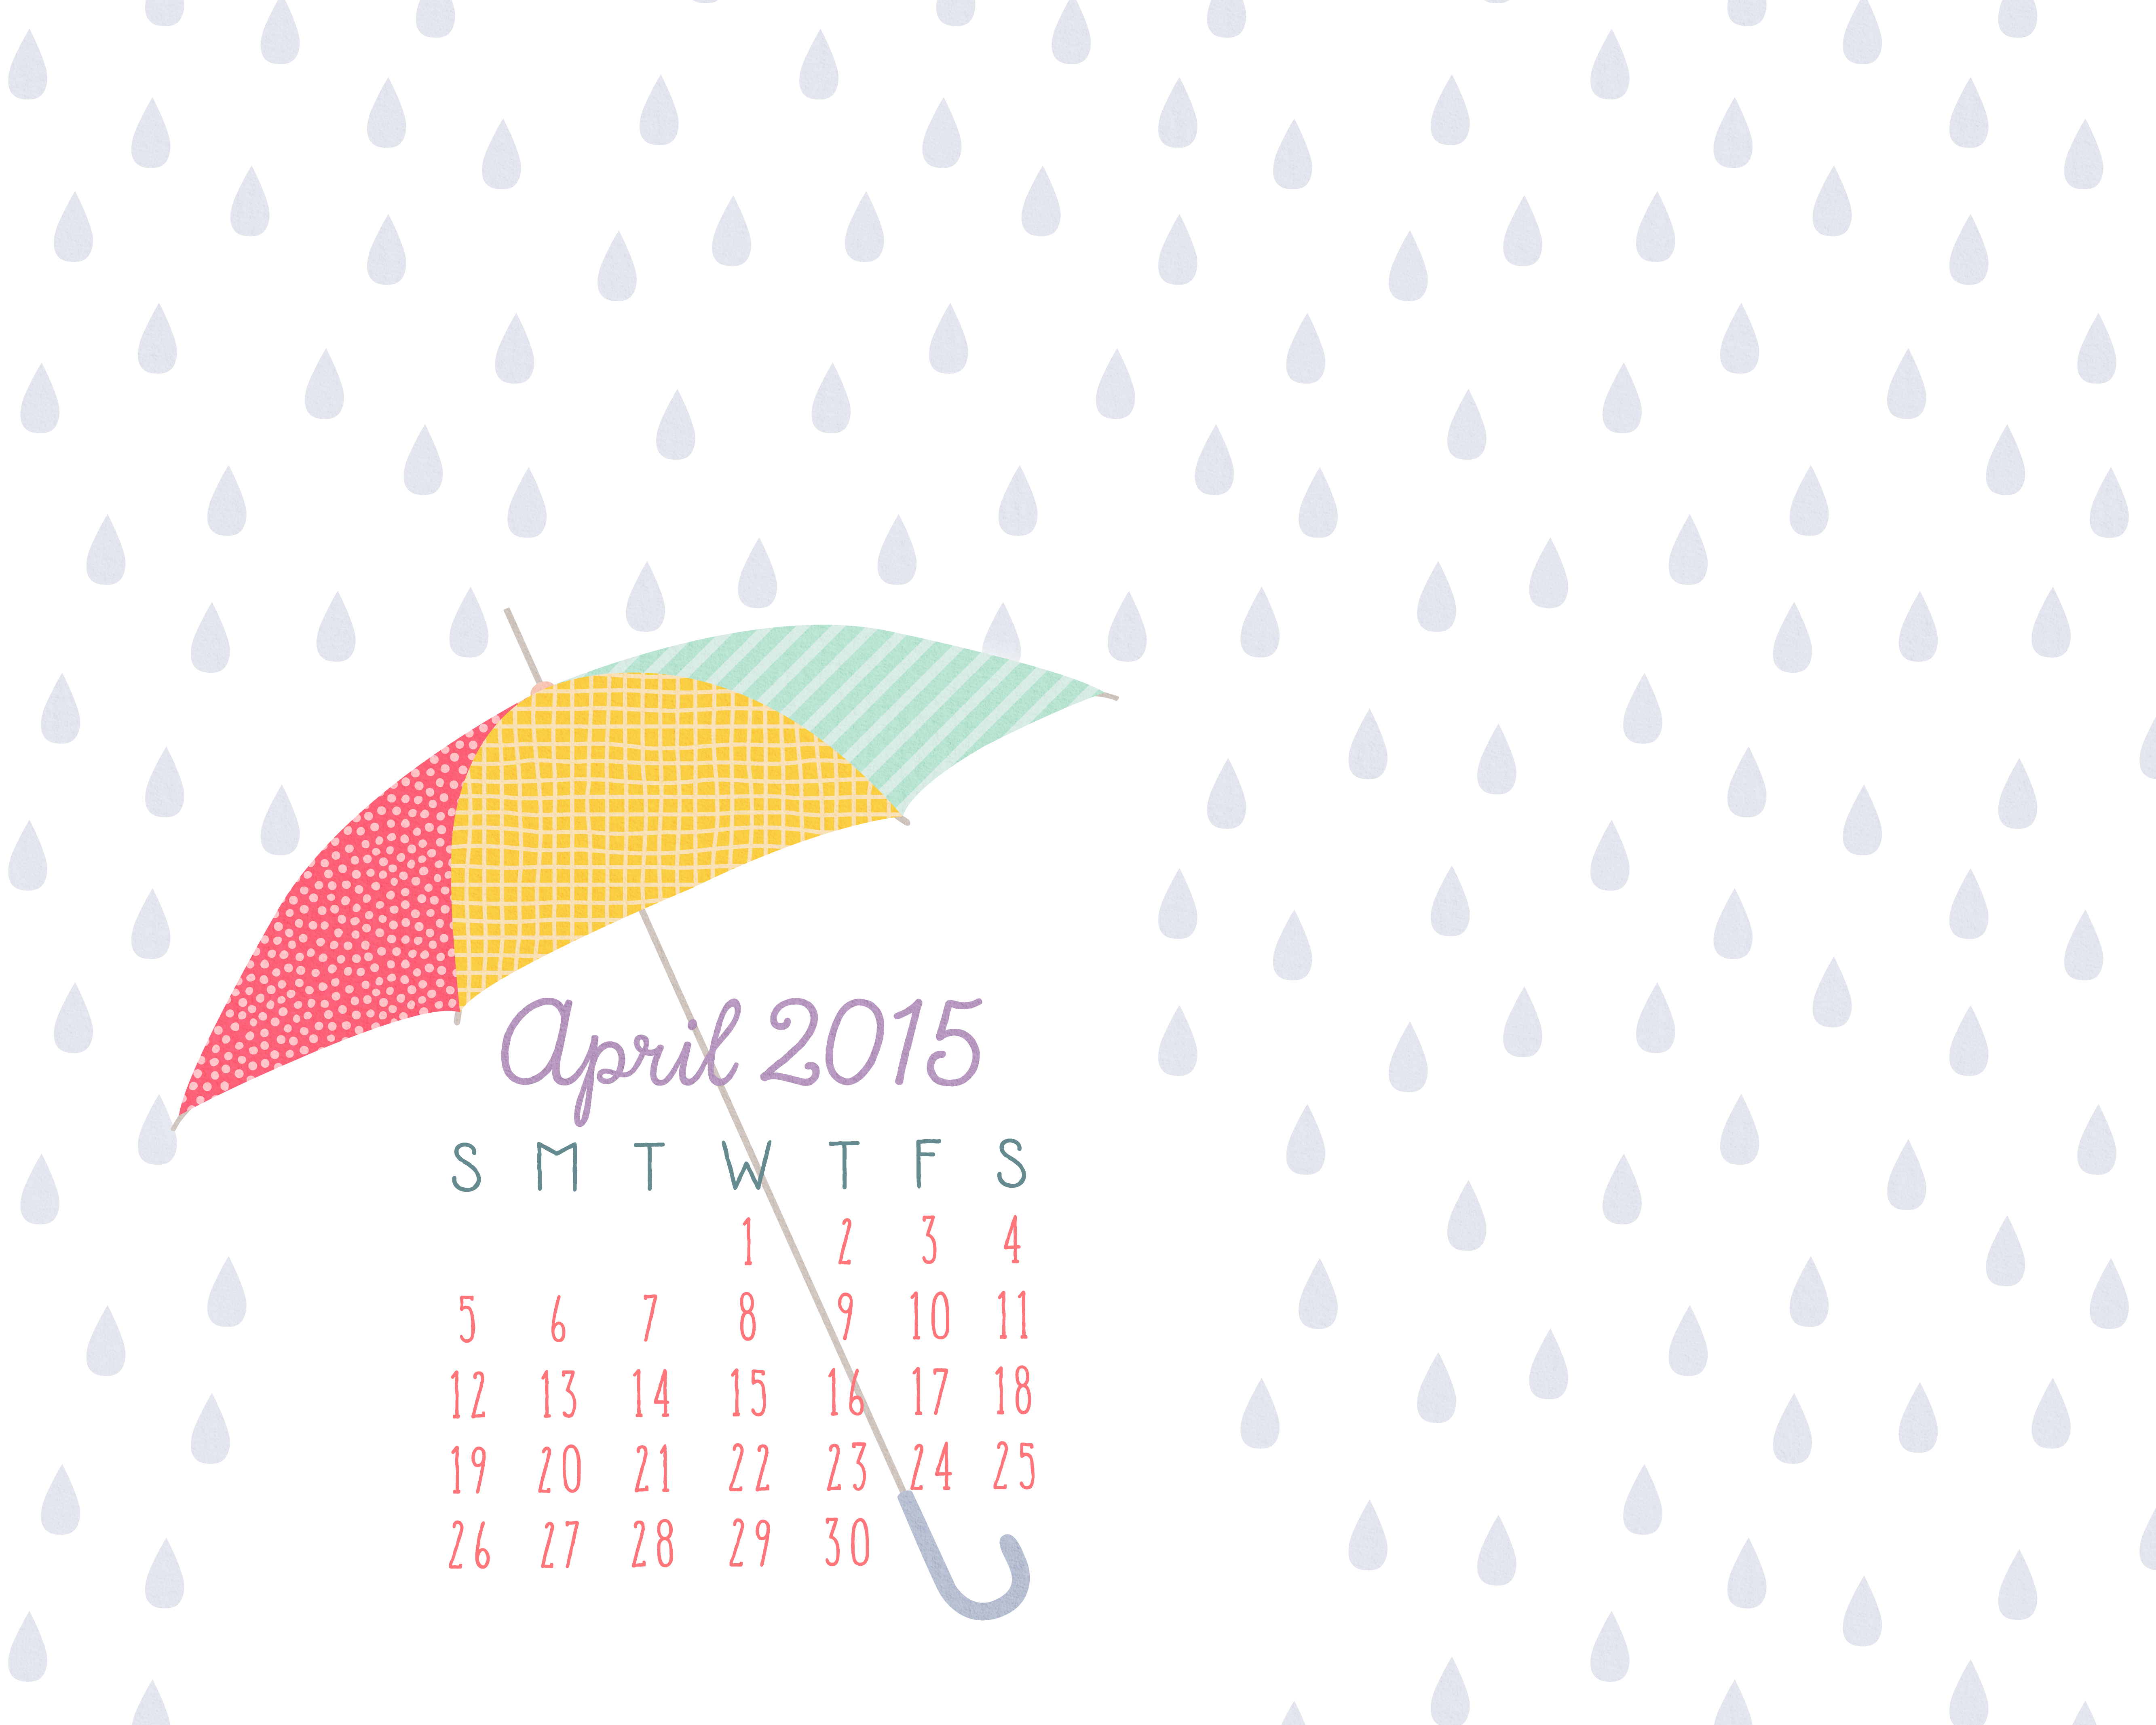 April Wallpaper 5333x4267 px